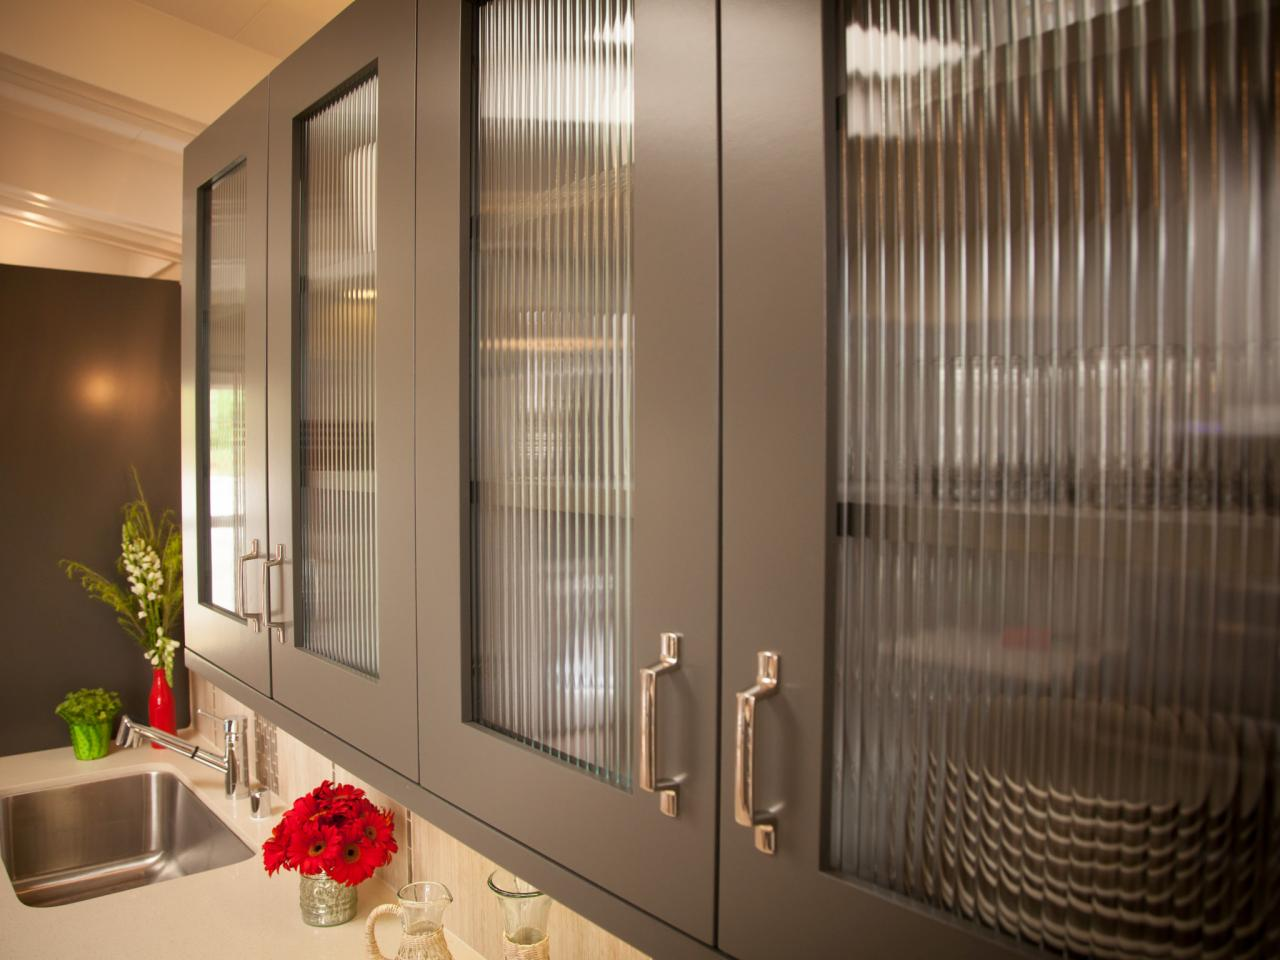 dp_stephanie-hatten-gray-modern-kitchen-cabinet-doors_h-jpg-rend-hgtvcom-1280-960